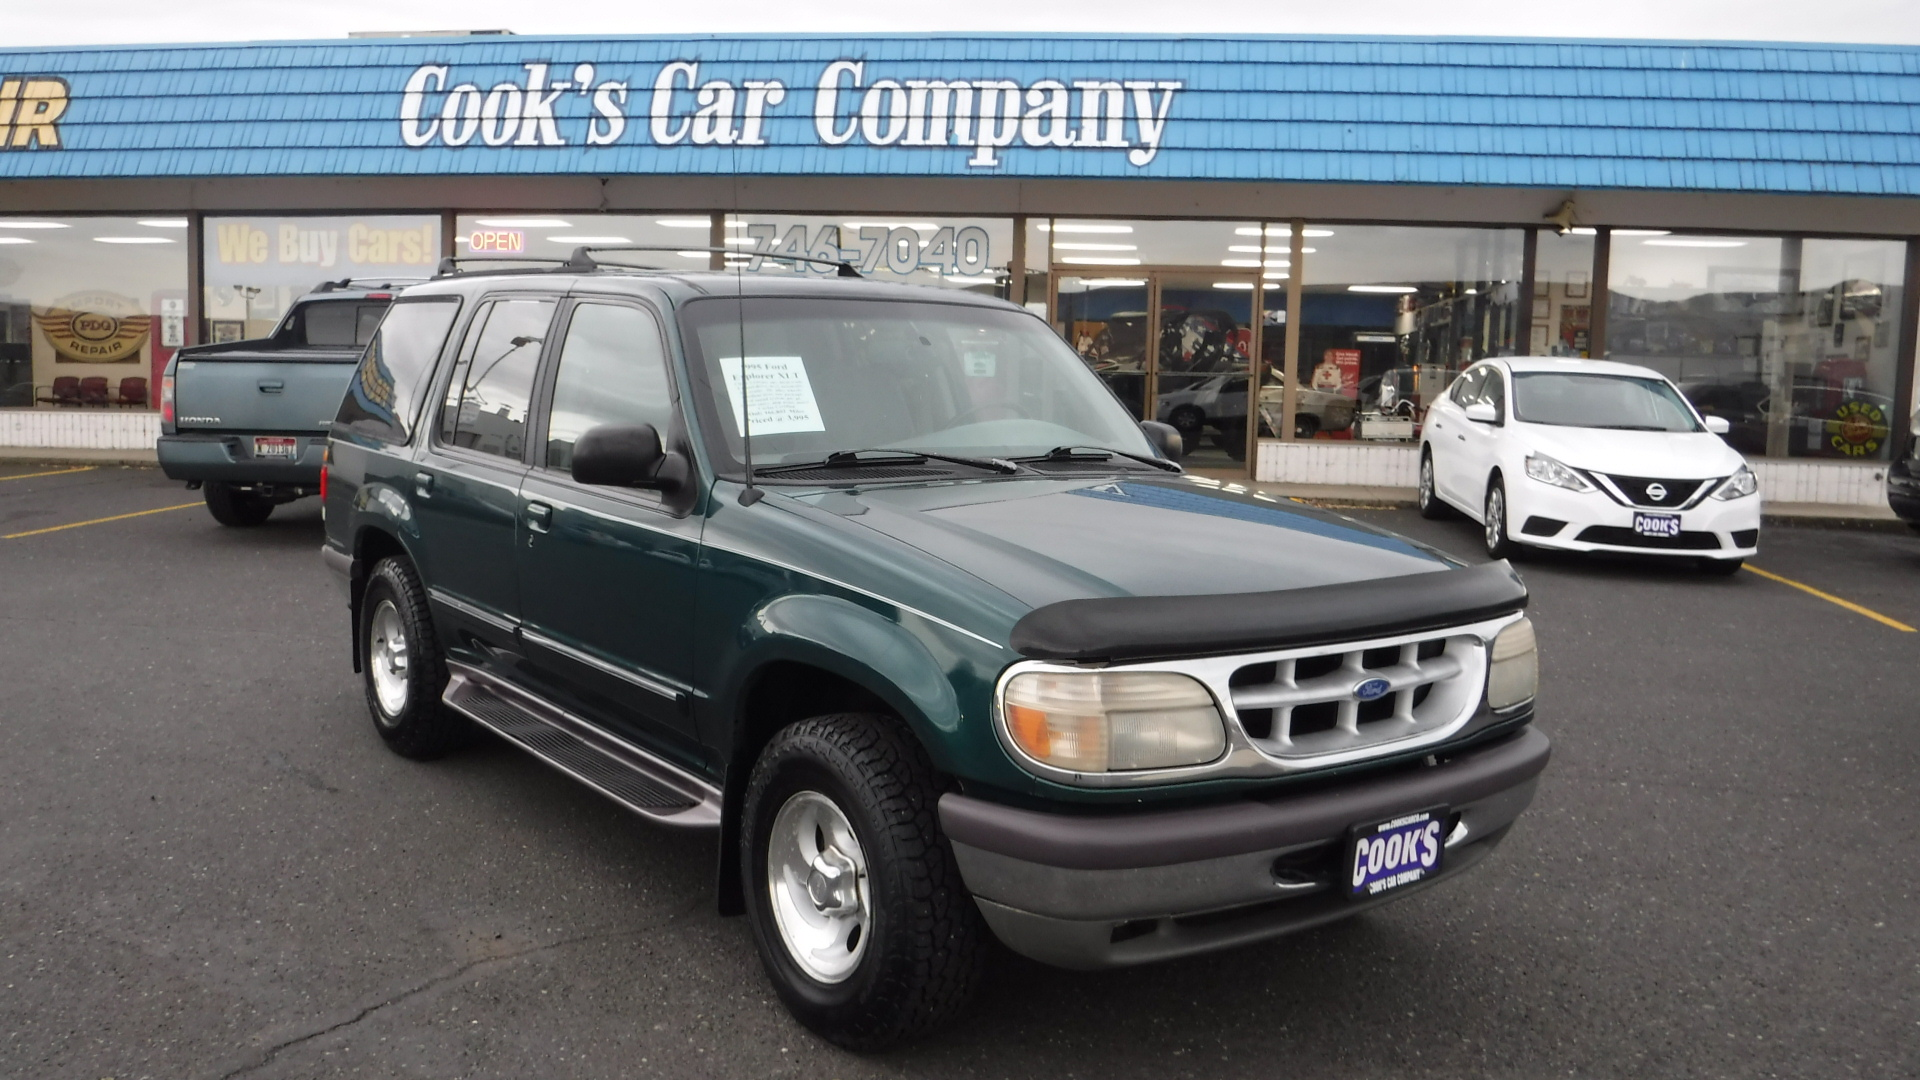 1995 Ford Explorer XLT 4×4 Clean 2-Owner SUV Local Trade-in